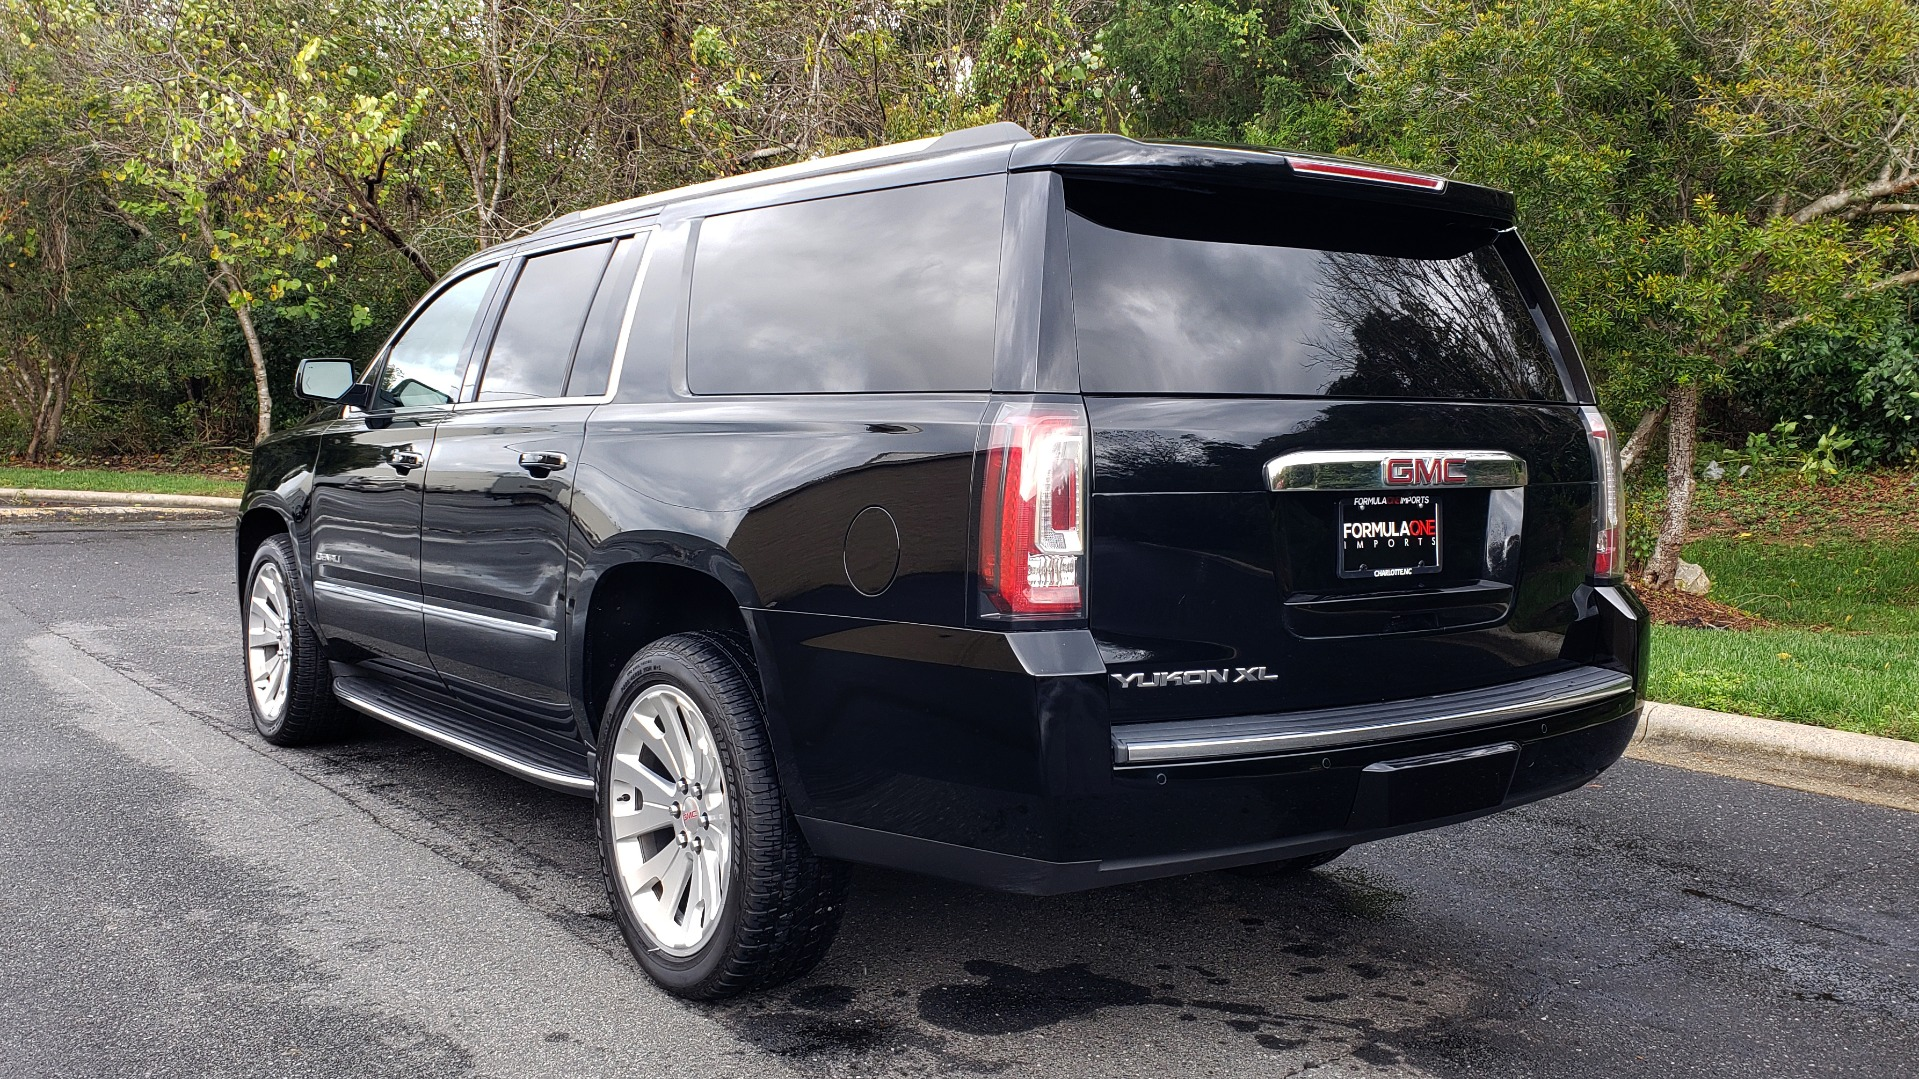 Used 2017 GMC YUKON XL DENALI 4WD / NAV / SUNROOF / ENT / 3-ROWS / BOSE / REARVIEW for sale $48,695 at Formula Imports in Charlotte NC 28227 3